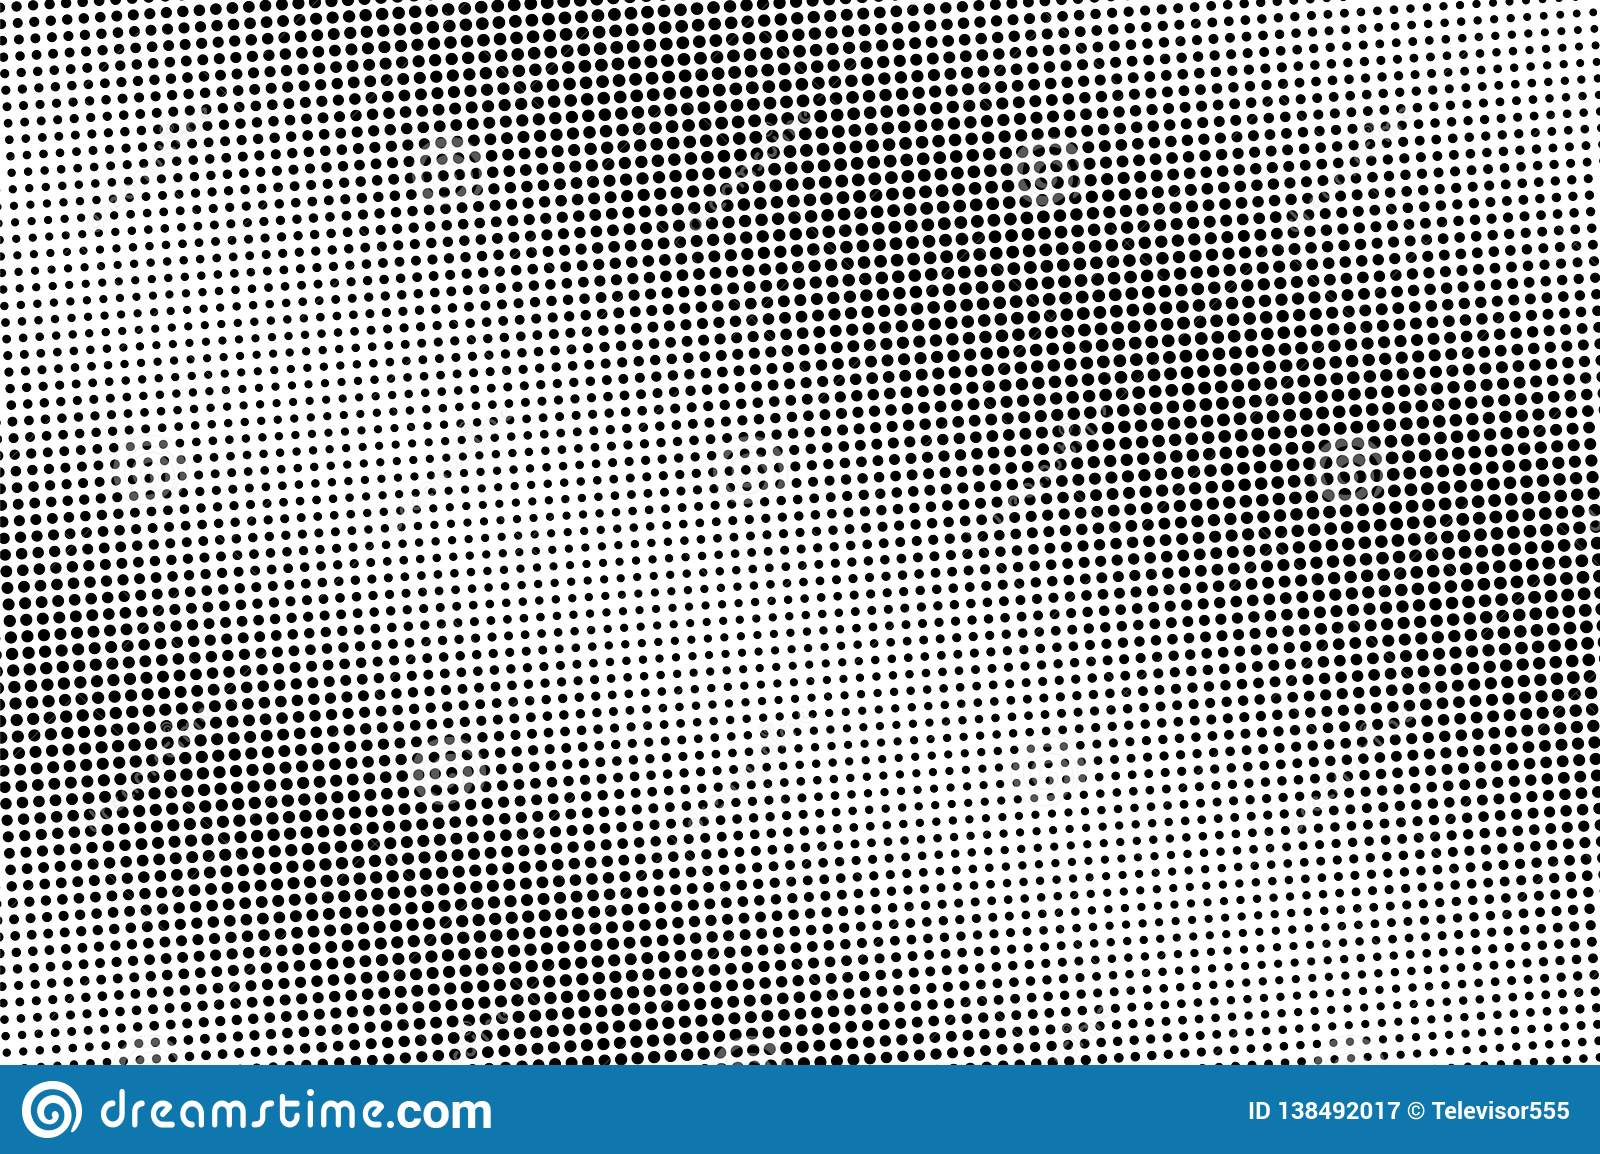 Black and white halftone vector. Diagonal dotted gradient. Vintage perforated texture. Retro style overlay